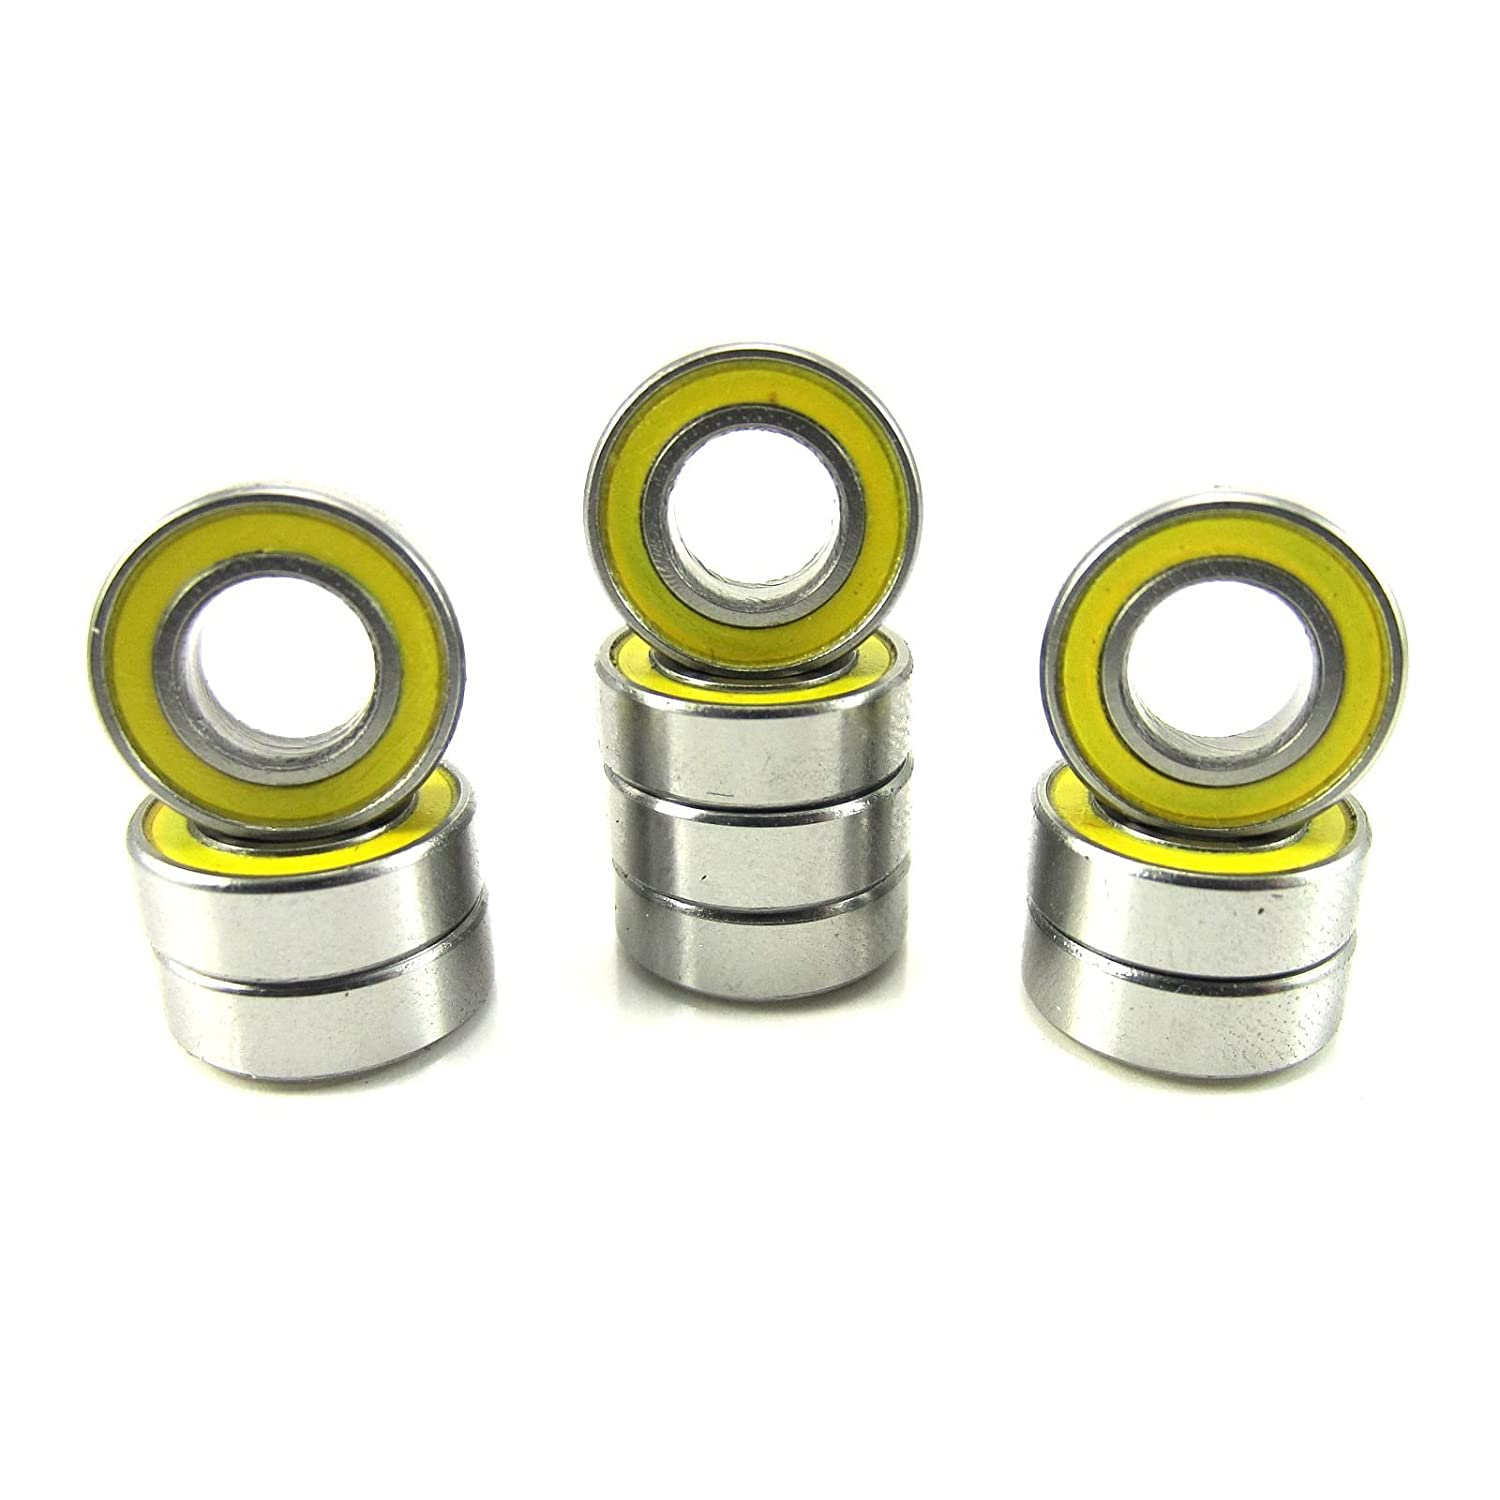 Traxxas 5117 6x12x4mm Replacement Precision Ball Bearings MR126-2RSYE (10)